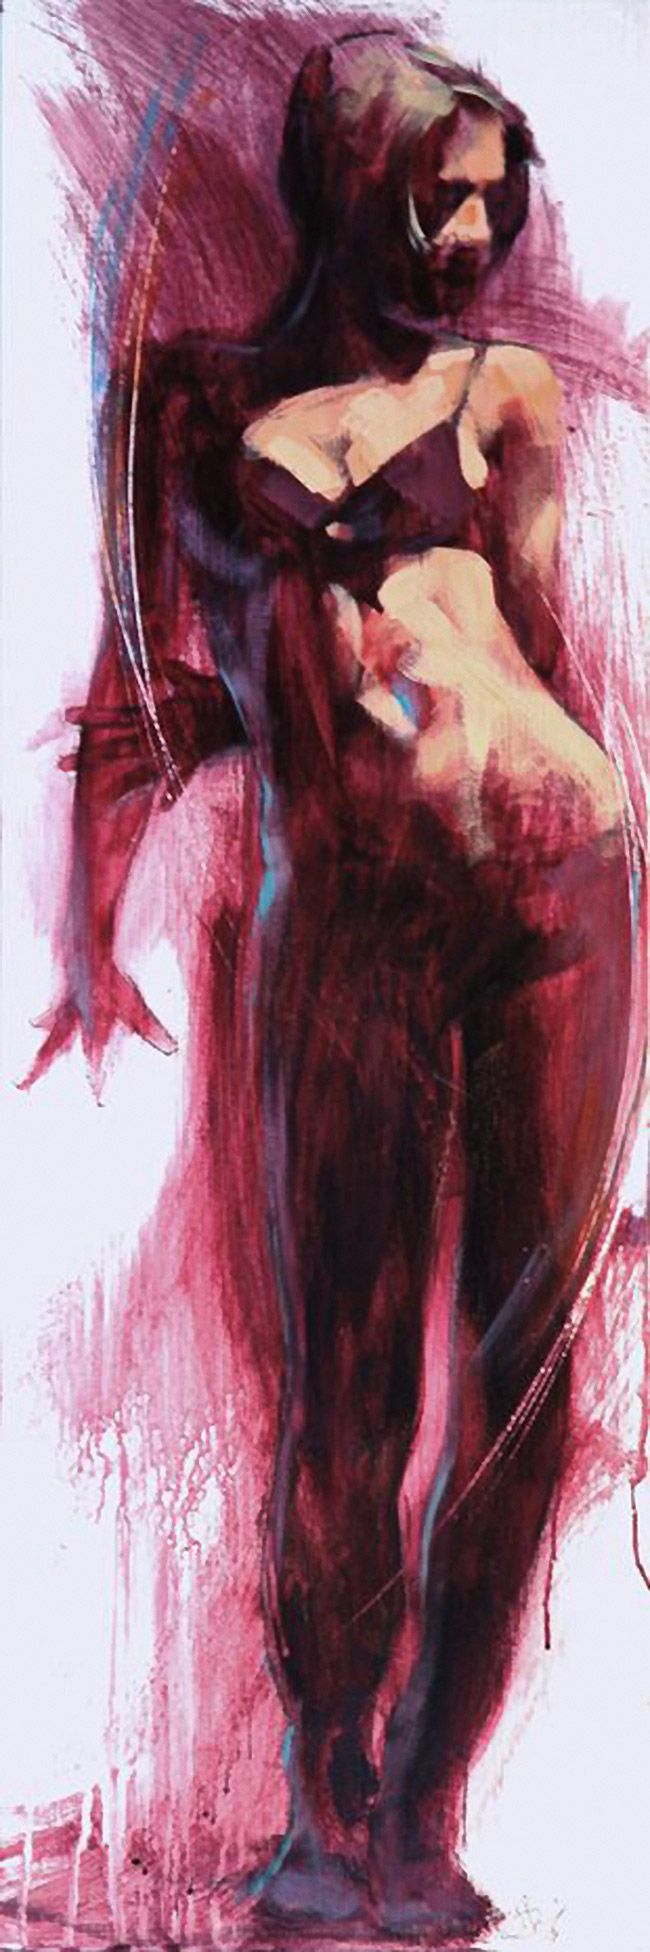 Brian Smith; Toronto, Ontario, Canada {contemporary figurative #expressionist art female figure swimsuit standing woman smudged textures drips painting #loveart}